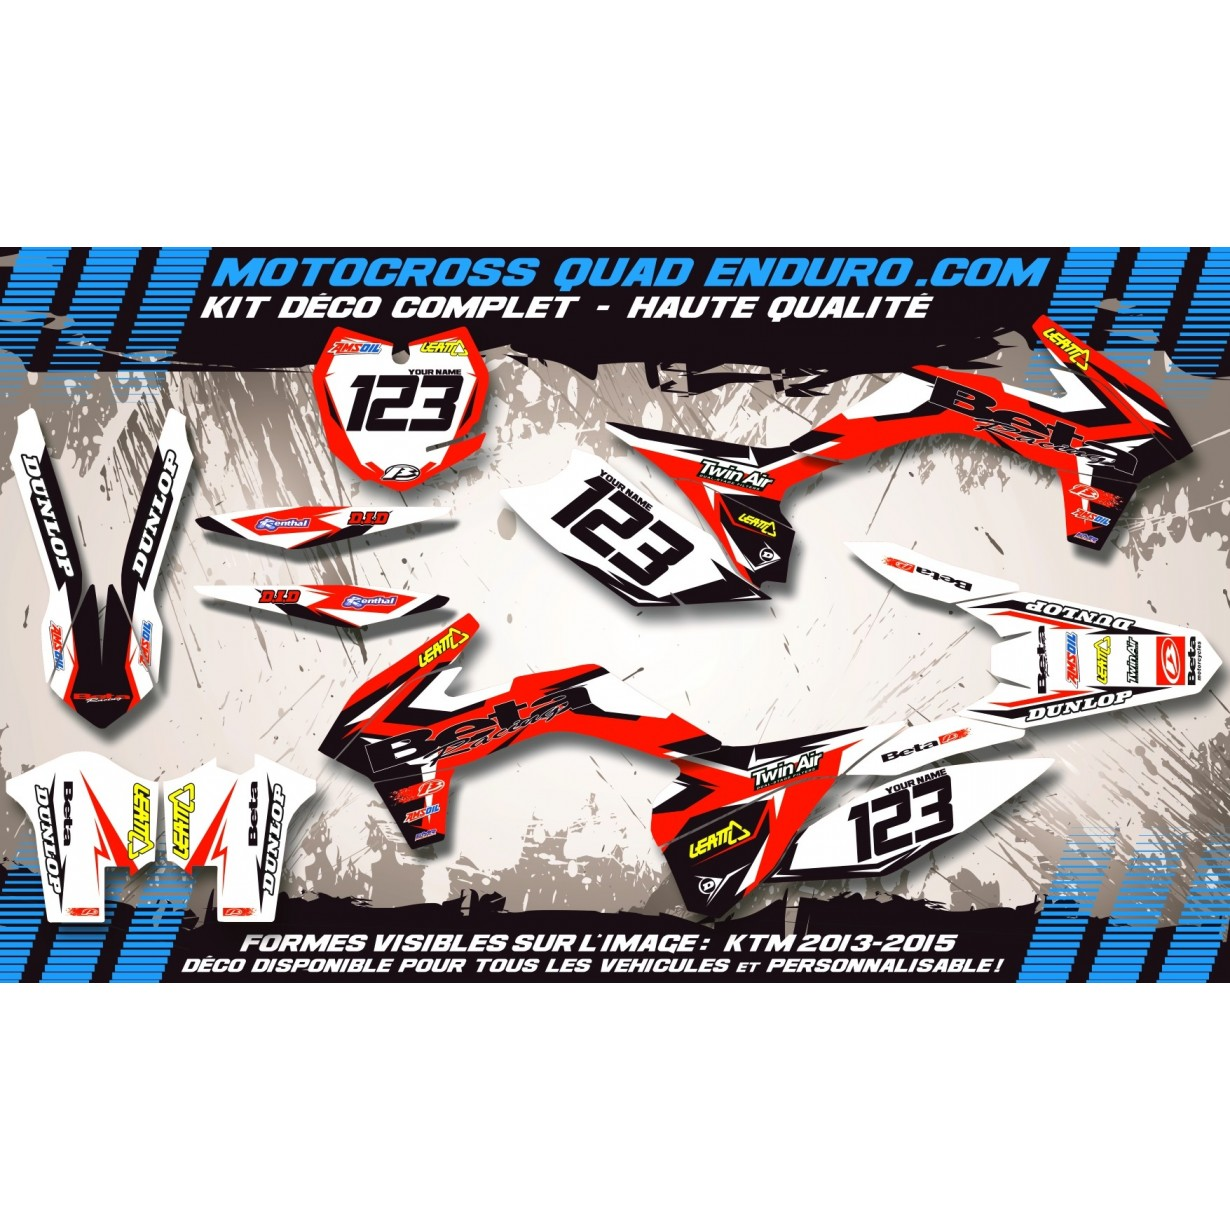 KIT DÉCO Perso 50 RR enduro 11-17 Factory Replica MA10G